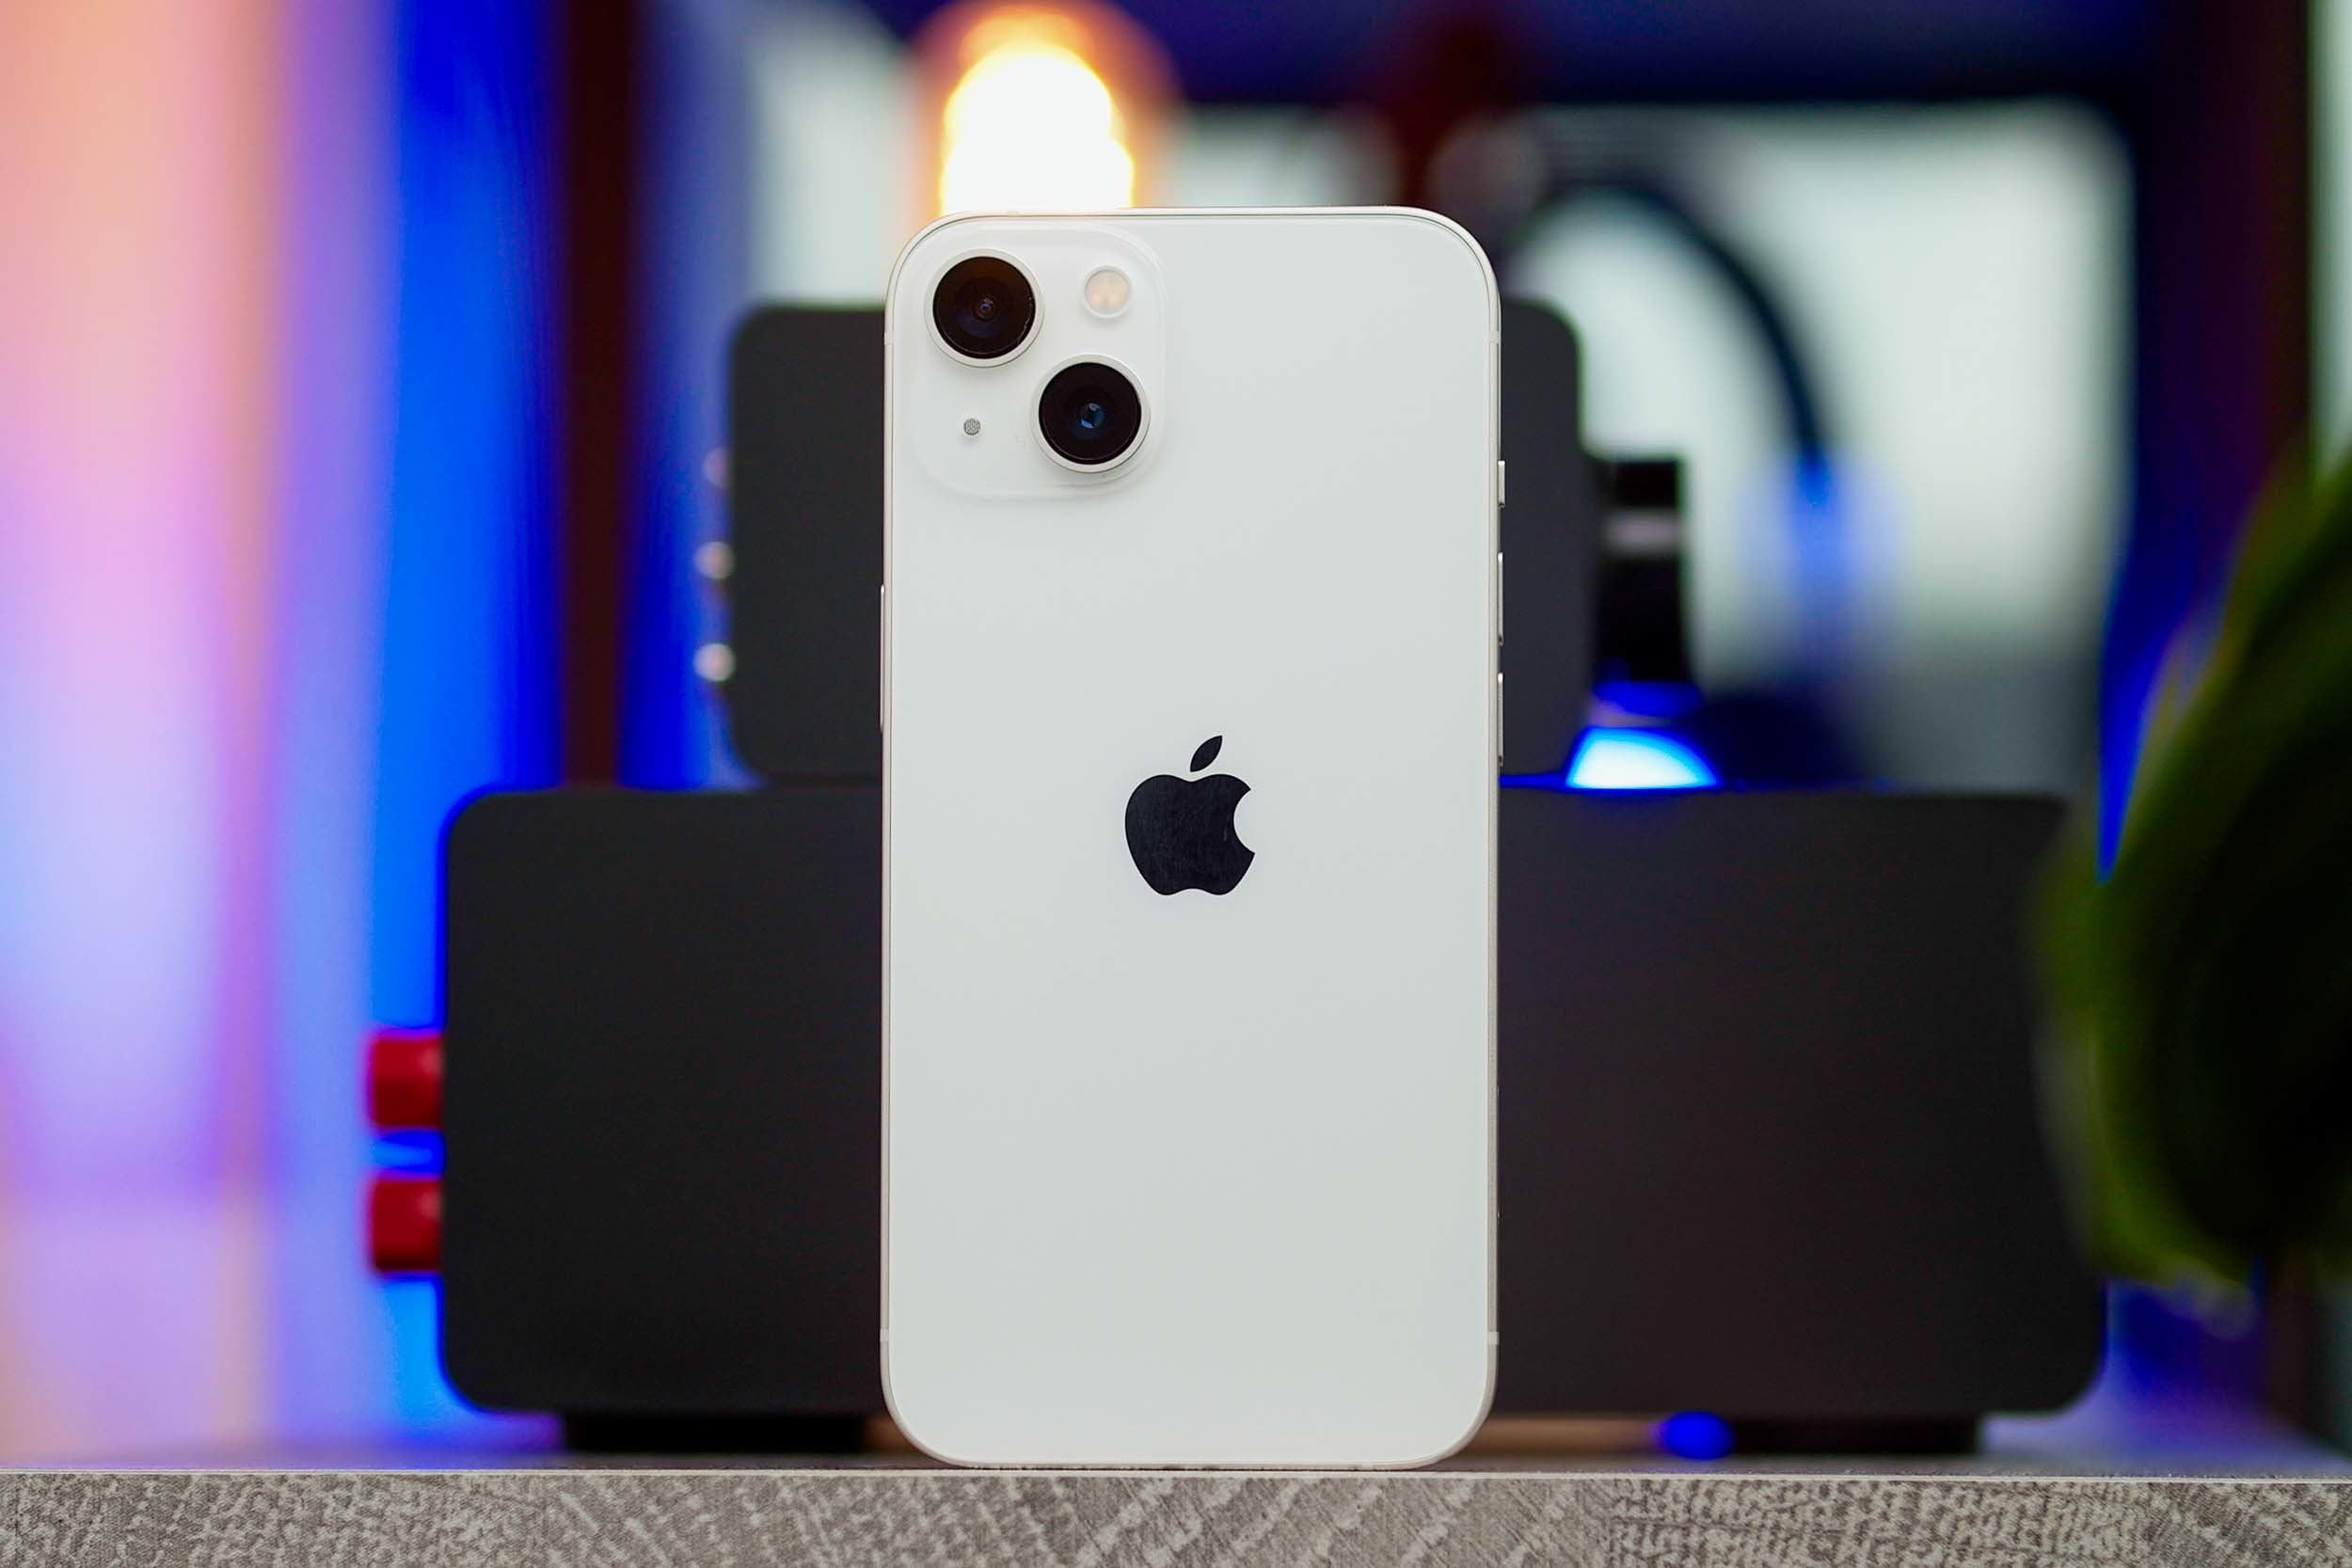 iPhone 13 standing upright showing back.